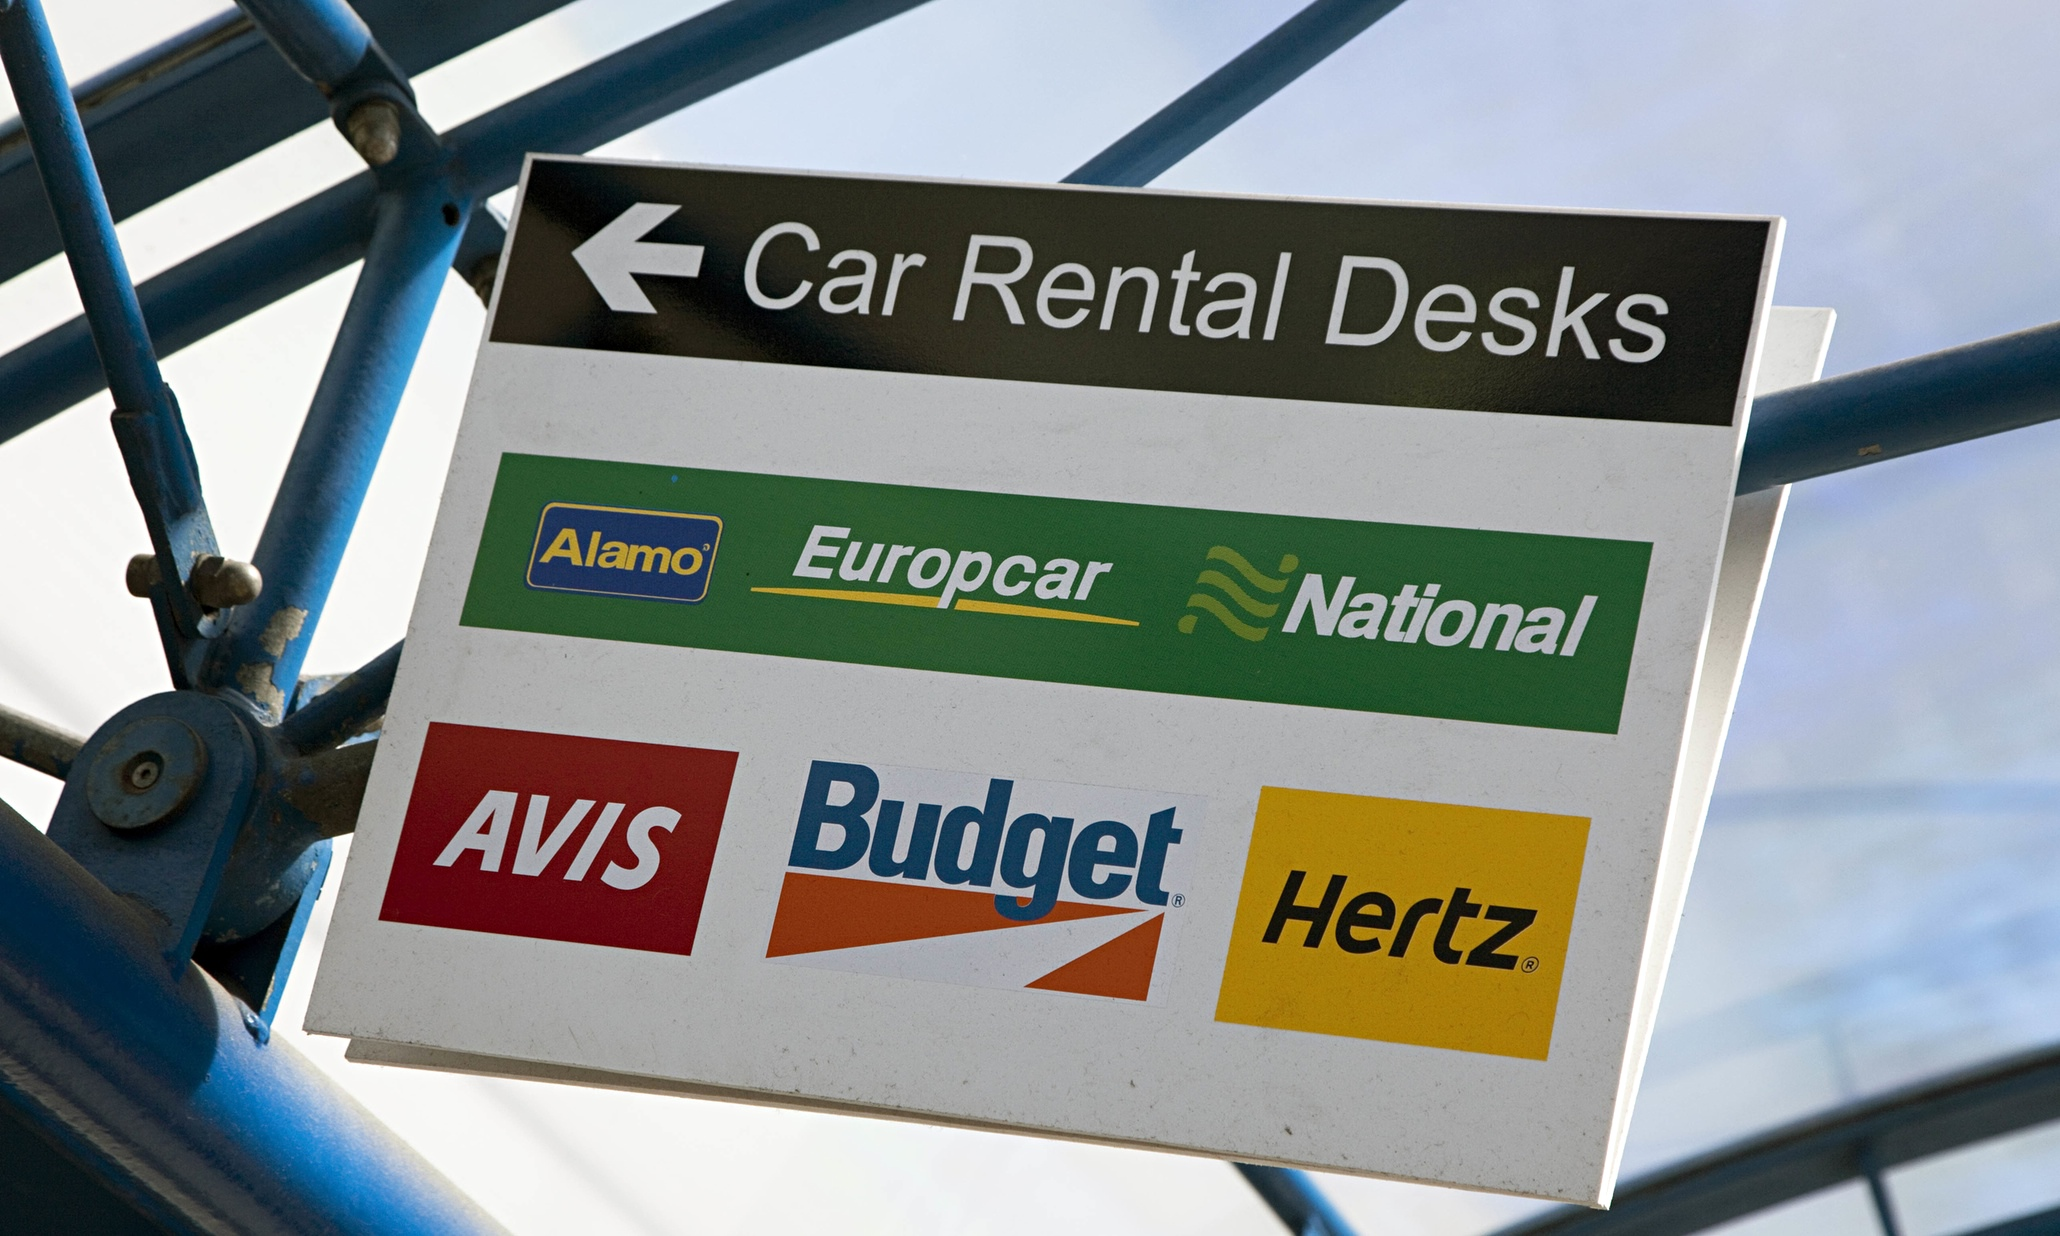 buy insurance while taking a rental car